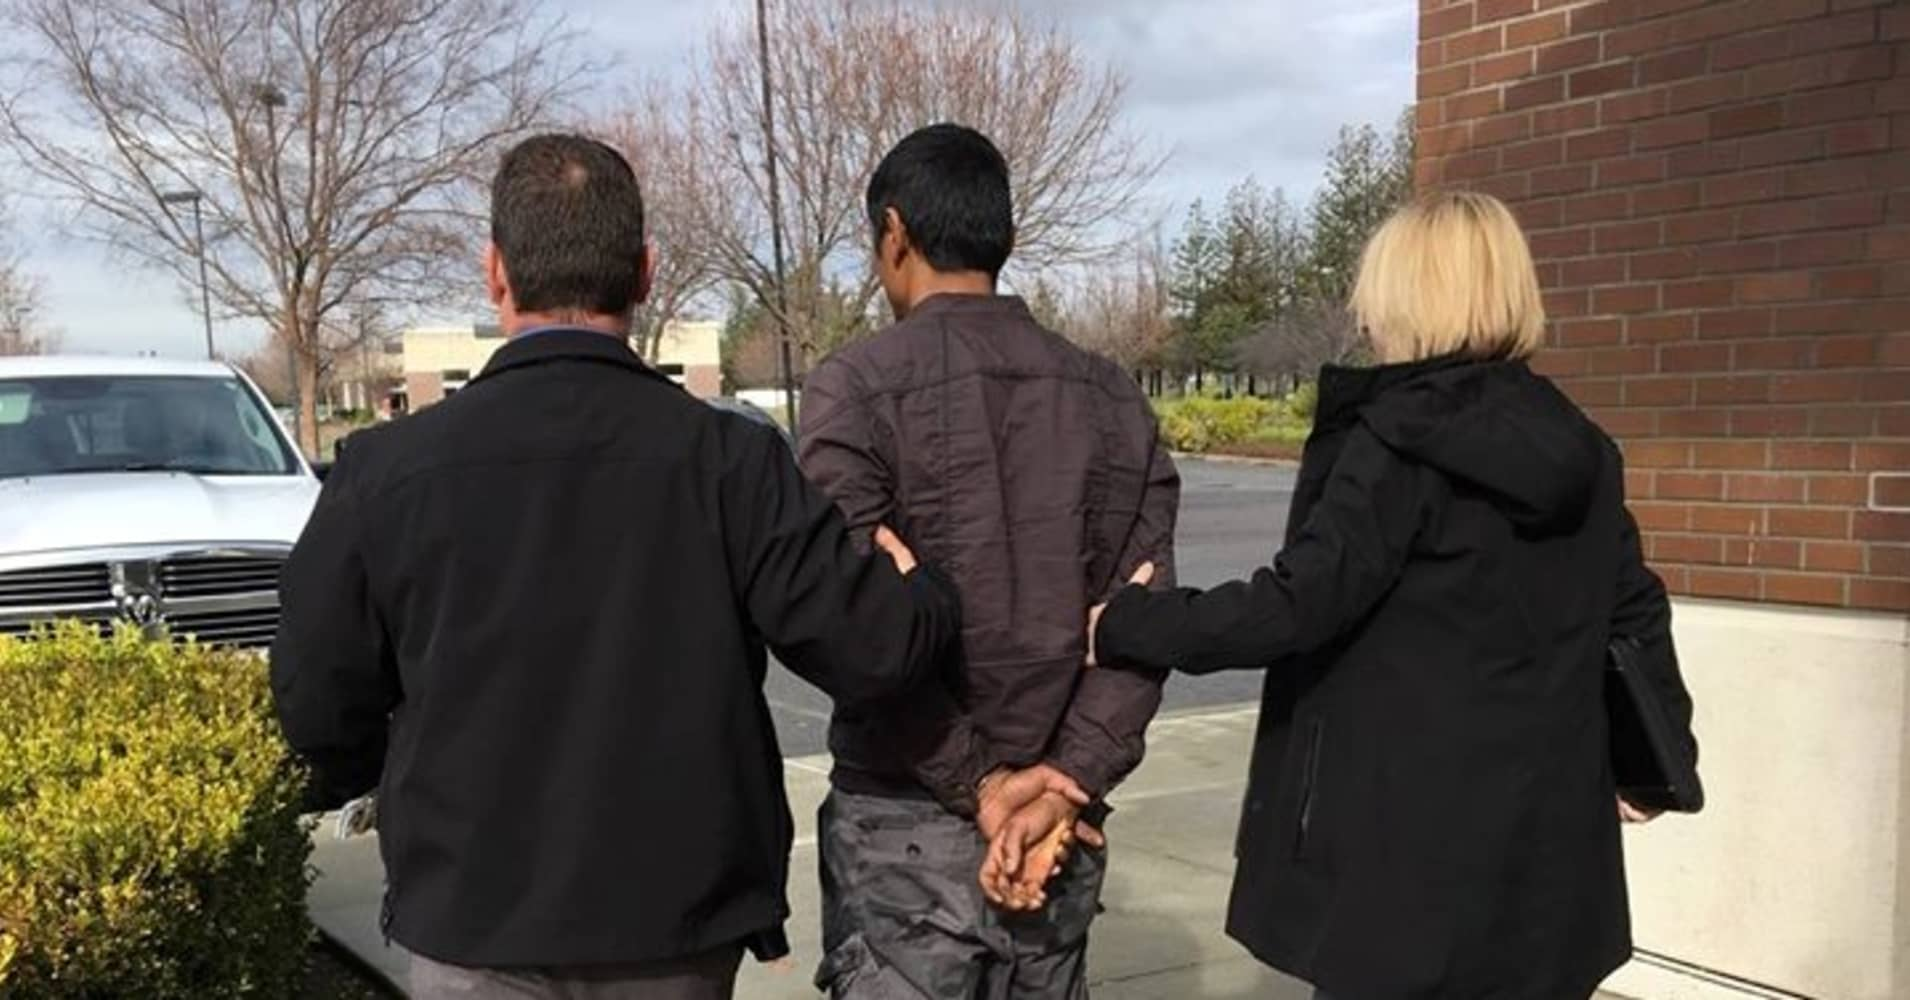 Authorities in Vacaville, California arresting 35-year-old Adul Saosongyang for allegedly stealing his roommate's scratch-off lottery ticket worth $10 million.